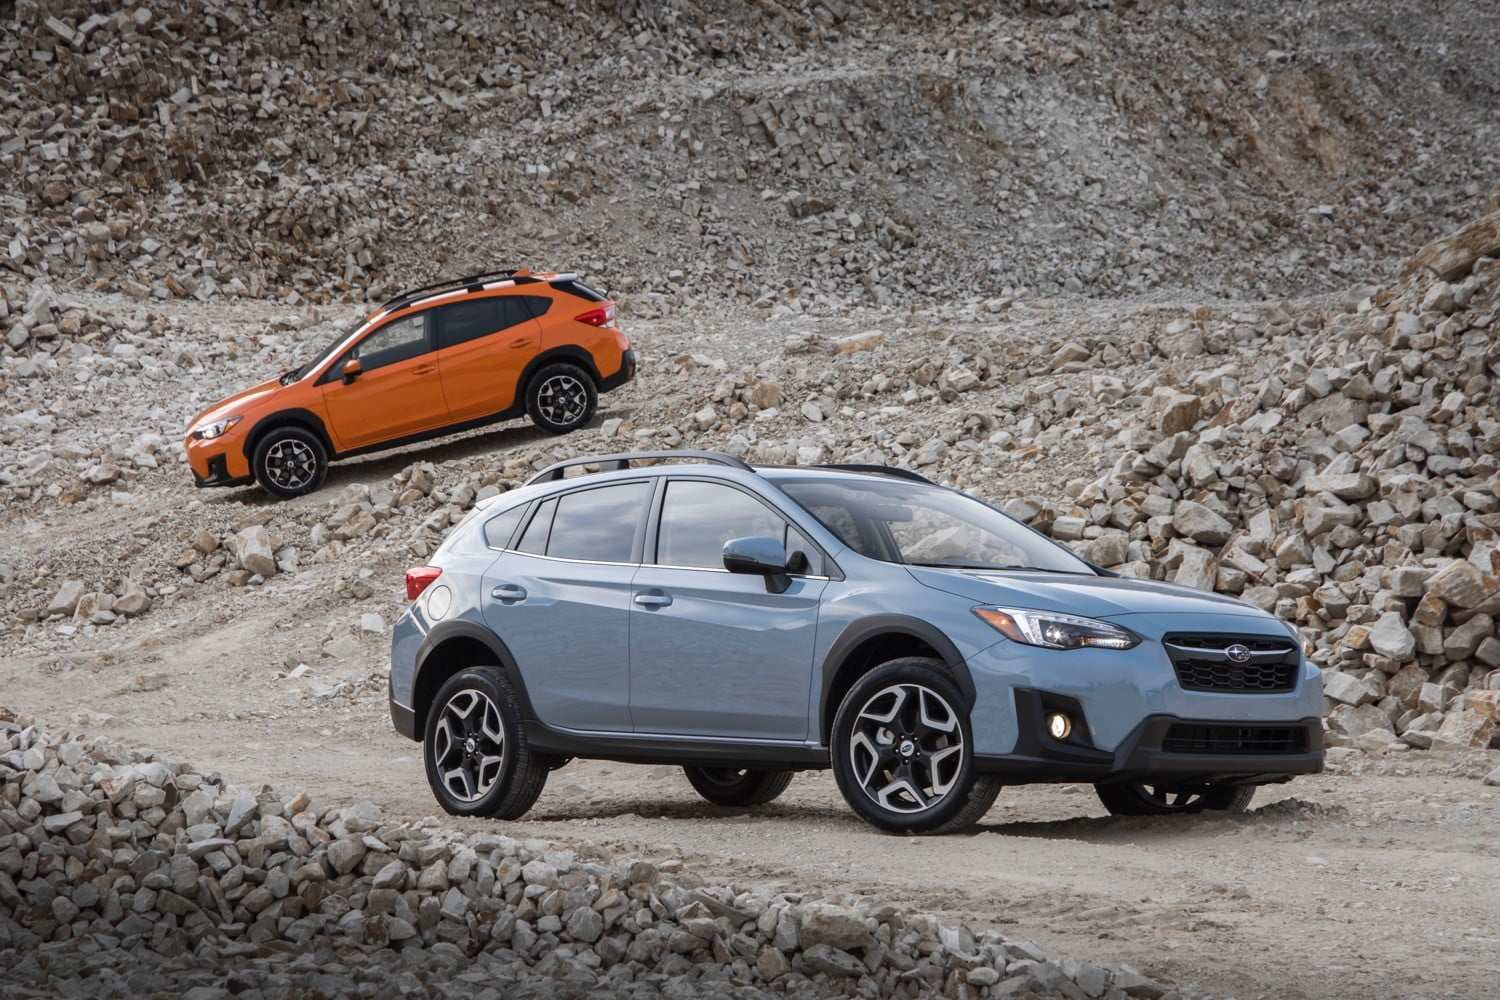 96 Concept of 2019 Subaru Crosstrek Reviews by 2019 Subaru Crosstrek